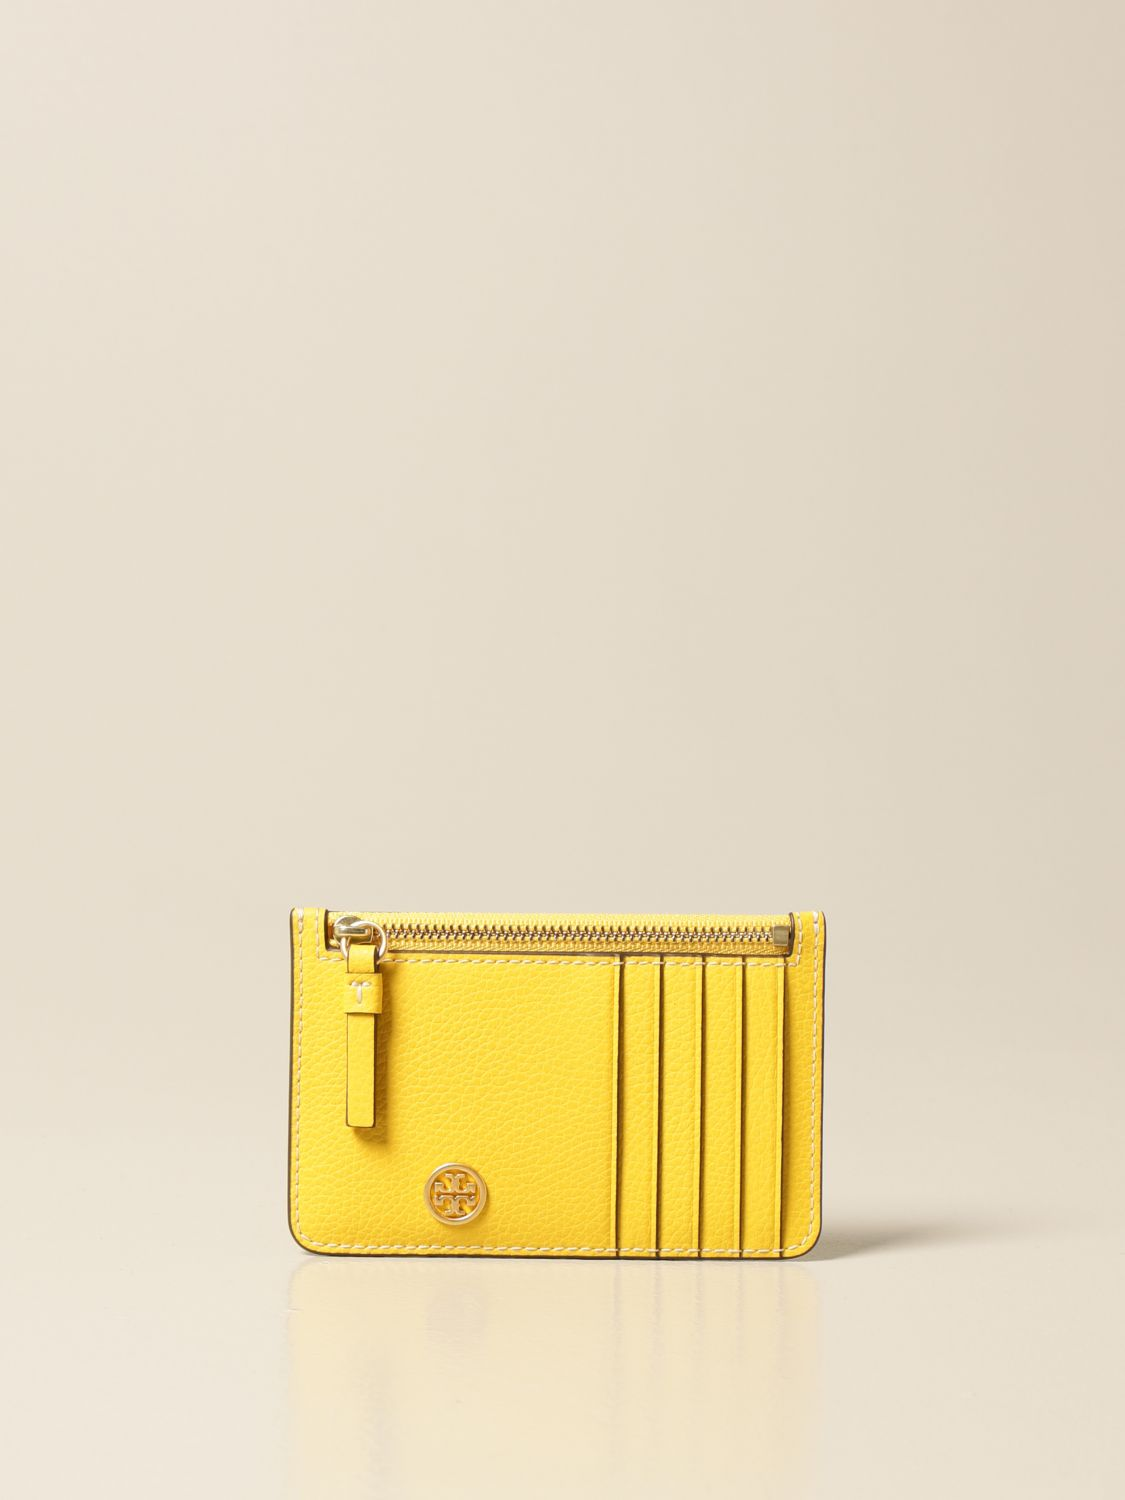 Wallet Tory Burch: Tory Burch credit card holder in hammered leather with logo and zip yellow 1